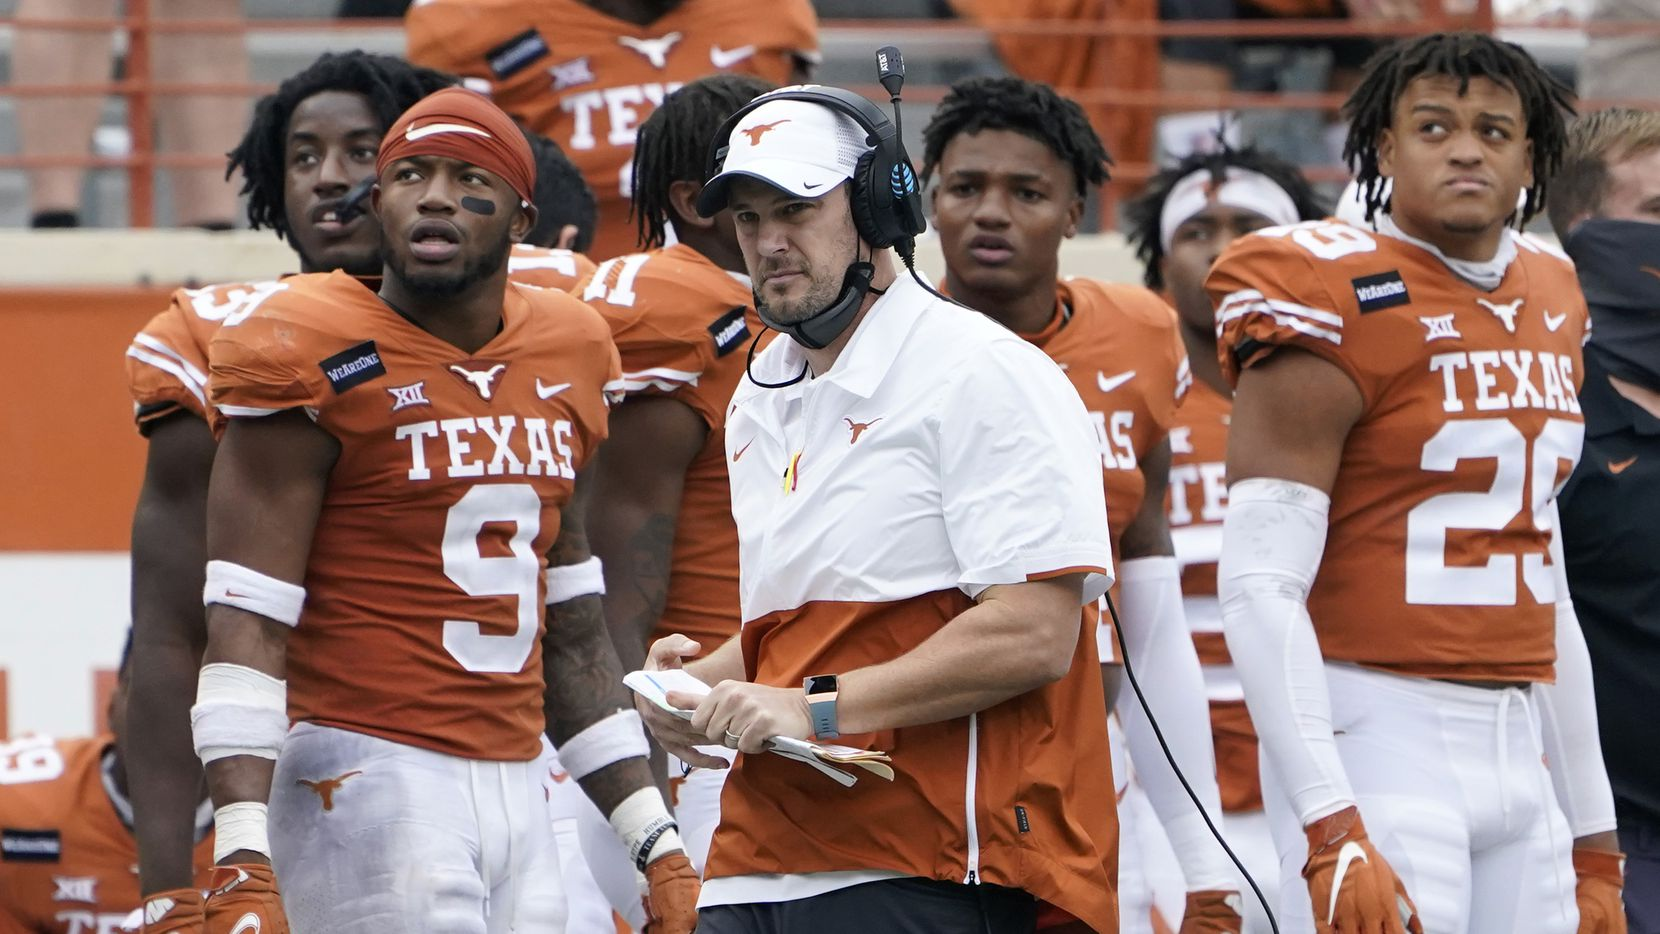 Texas head coach Tom Herman, center, on the side lines during the second half of an NCAA college football game against Iowa State, Friday, Nov. 27, 2020, in Austin, Texas.